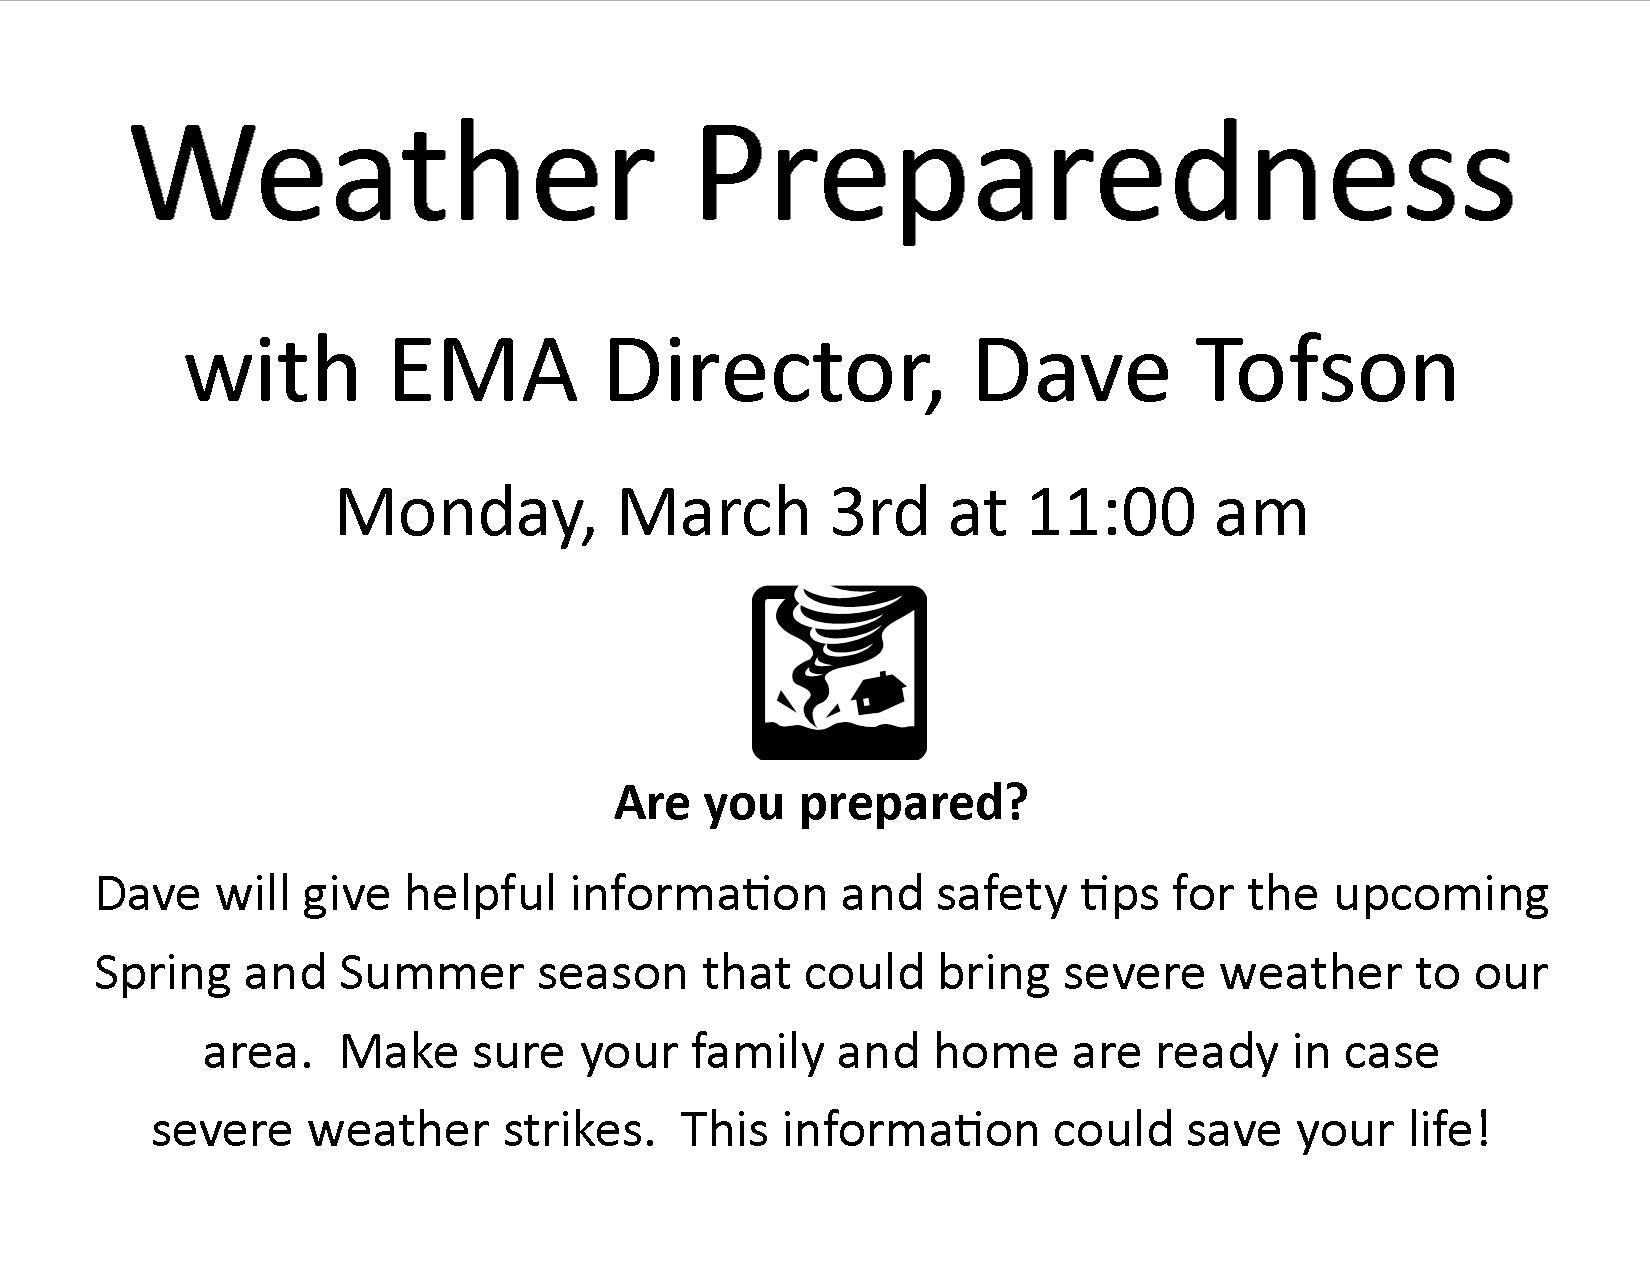 Are you prepared for the possibility of severe weather